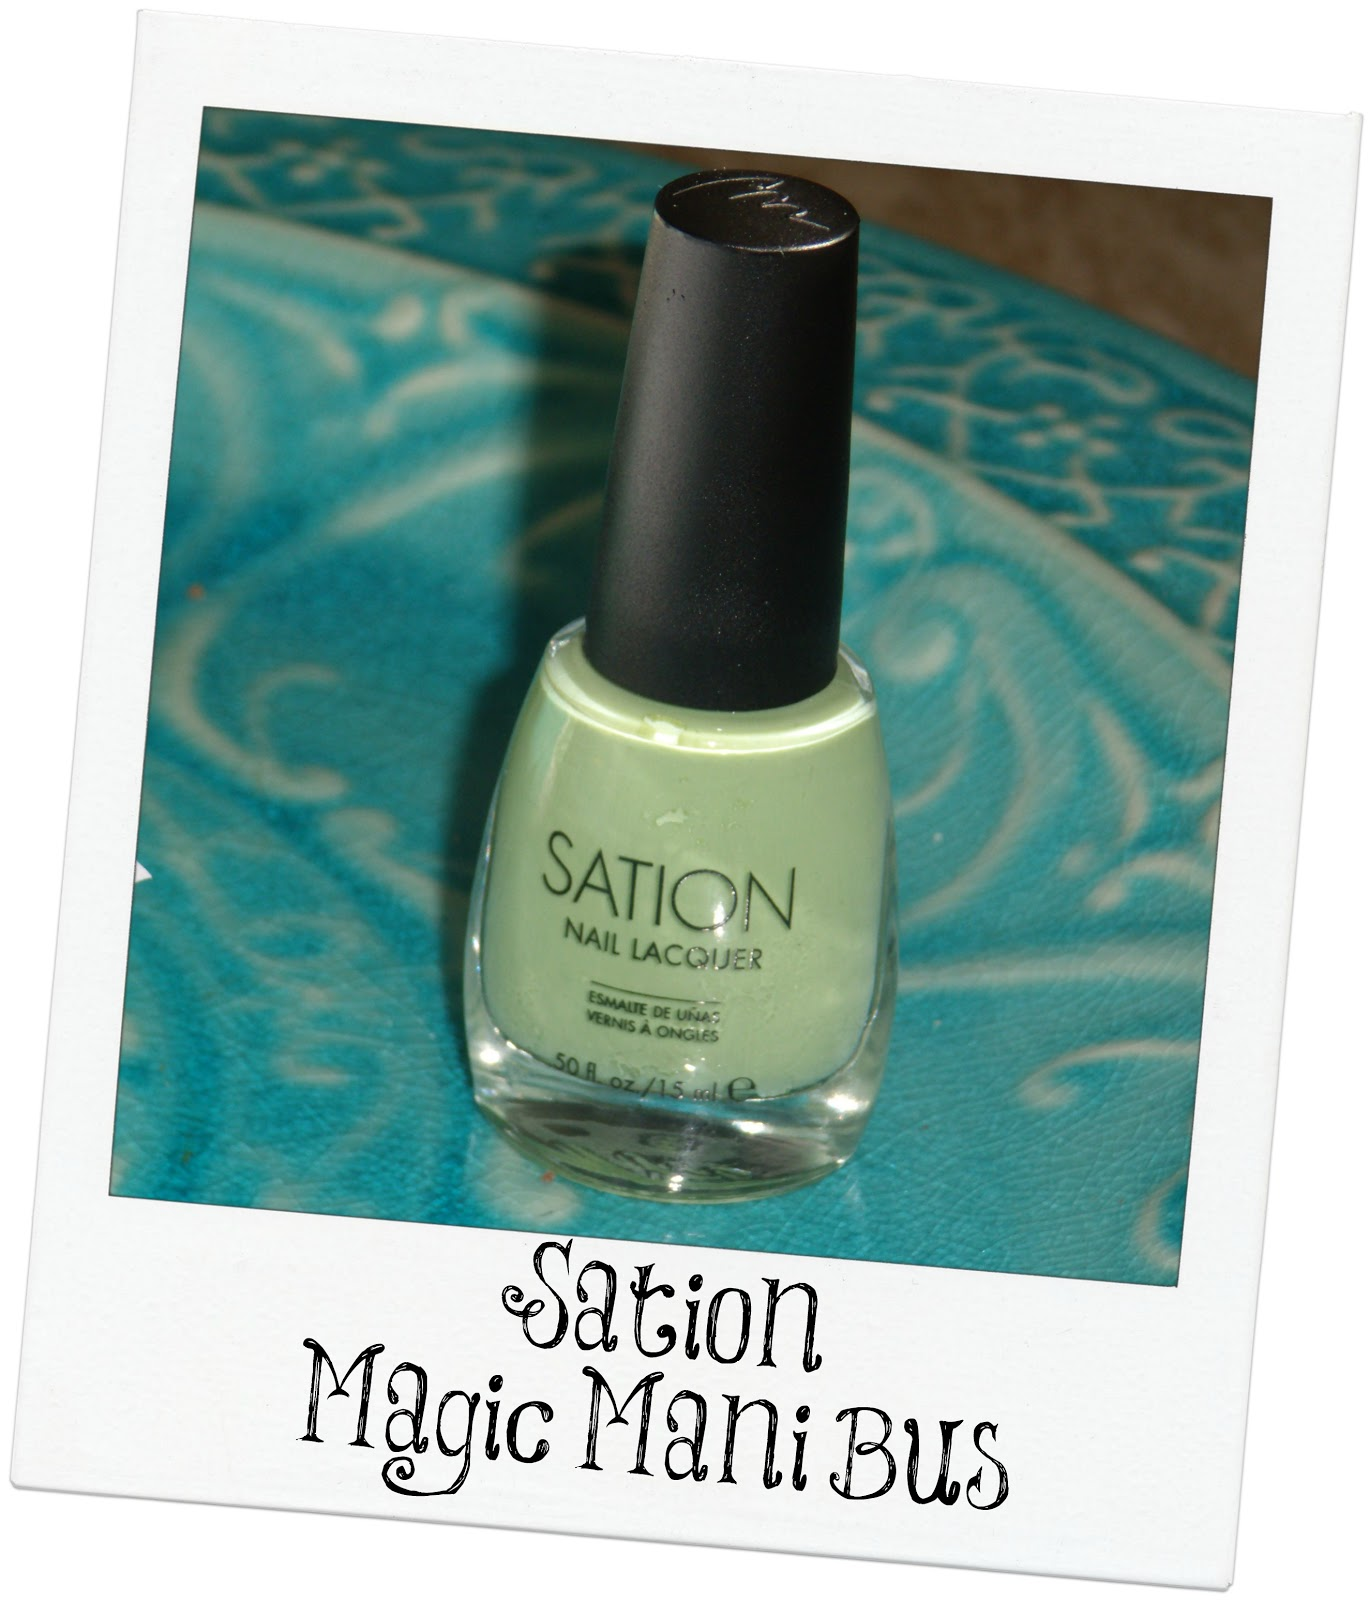 Sation Nail Polish: Obsessive Cosmetic Hoarders Unite!: Sation Nailstock